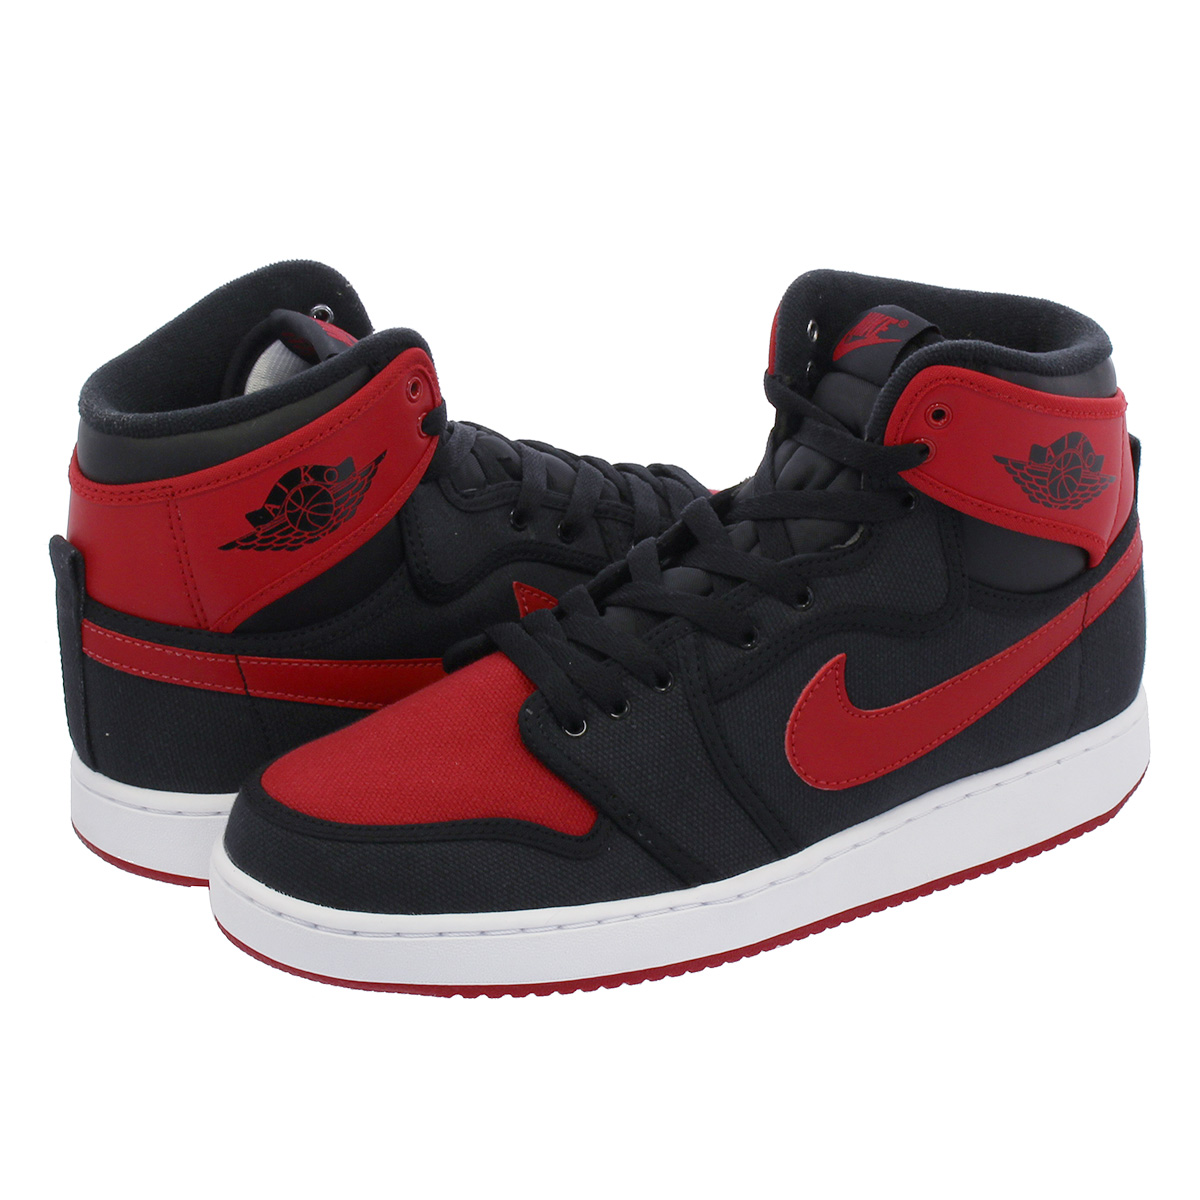 detailed look a4305 e35d8 NIKE AIR JORDAN 1 RETRO KO HIGH OG Nike Air Jordan 1 nostalgic KO high OG  BLACK VARSITY RED WHITE 638,471-001